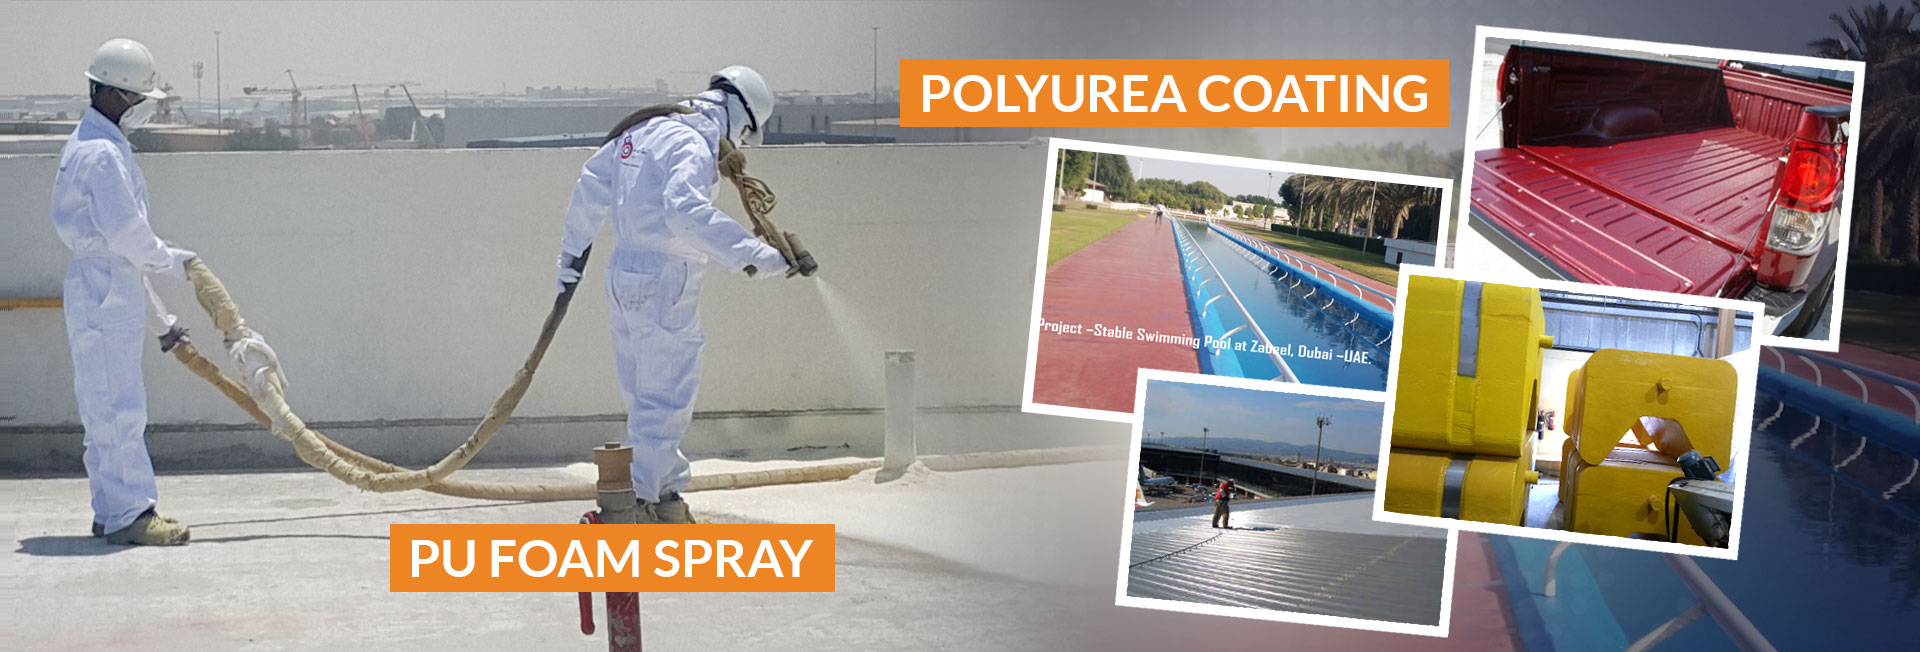 Polyurea Coating